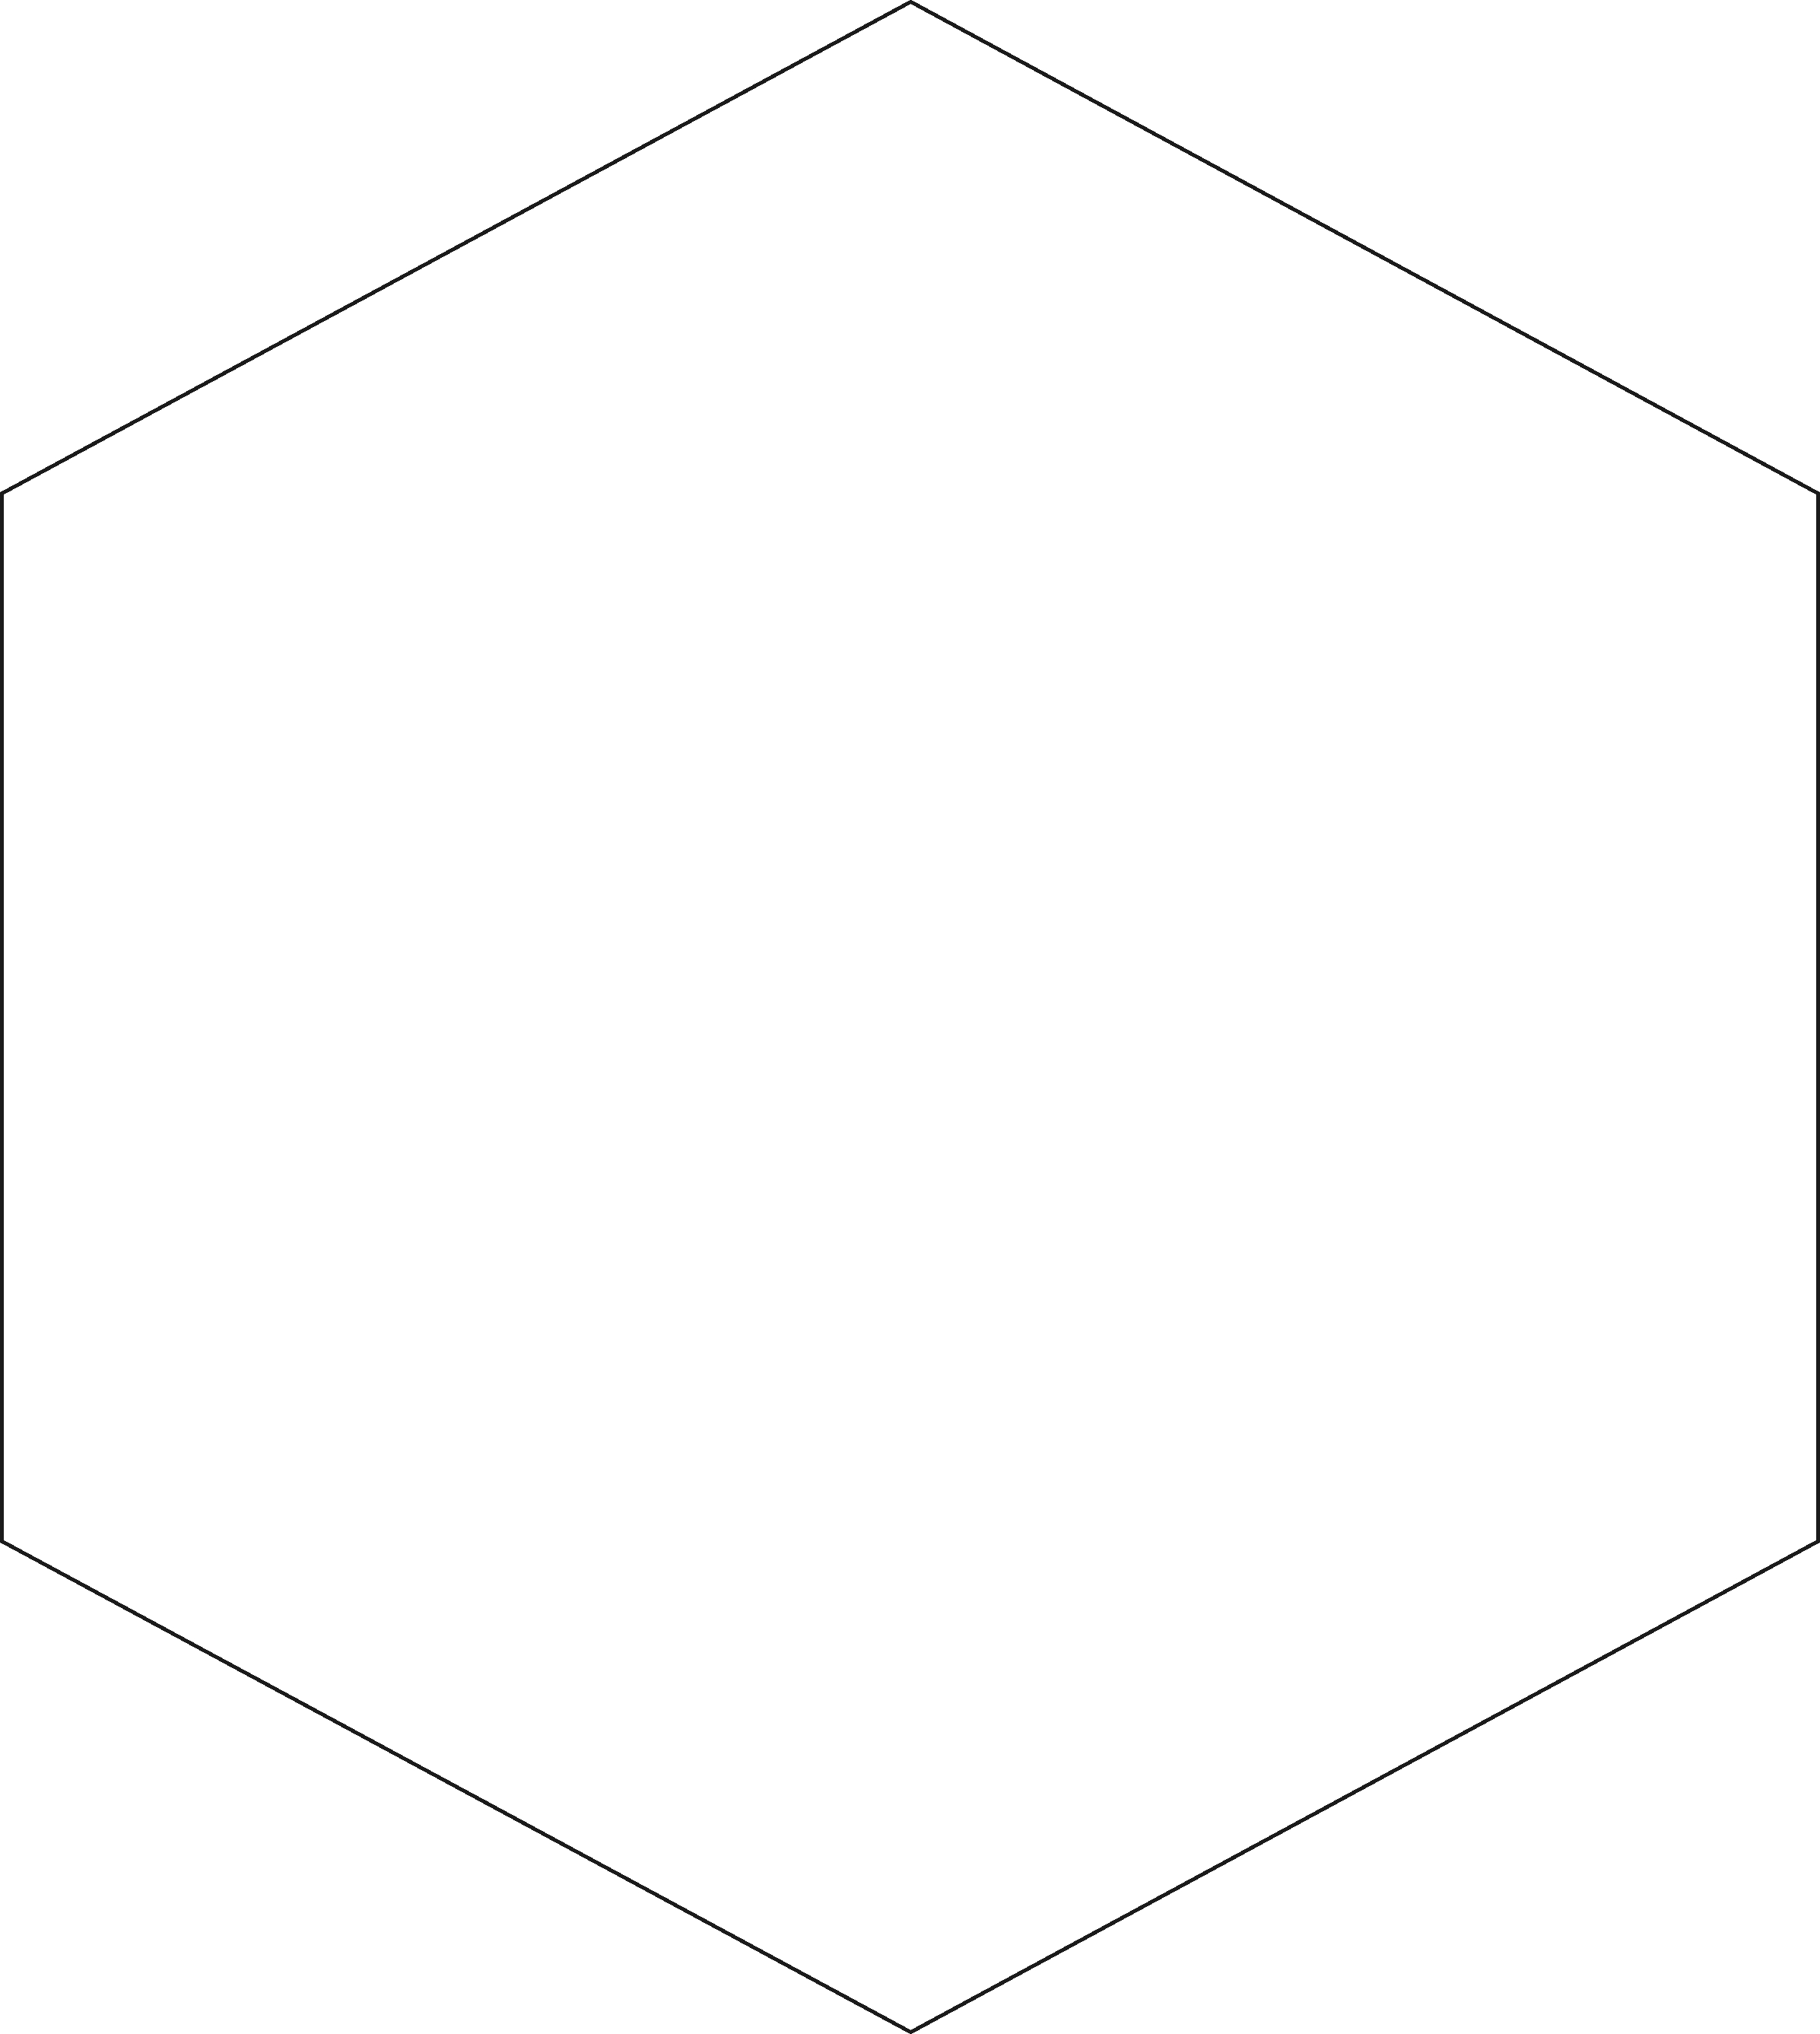 Hexagon clipart black and white picture transparent library Free Hexagon, Download Free Clip Art, Free Clip Art on Clipart Library picture transparent library